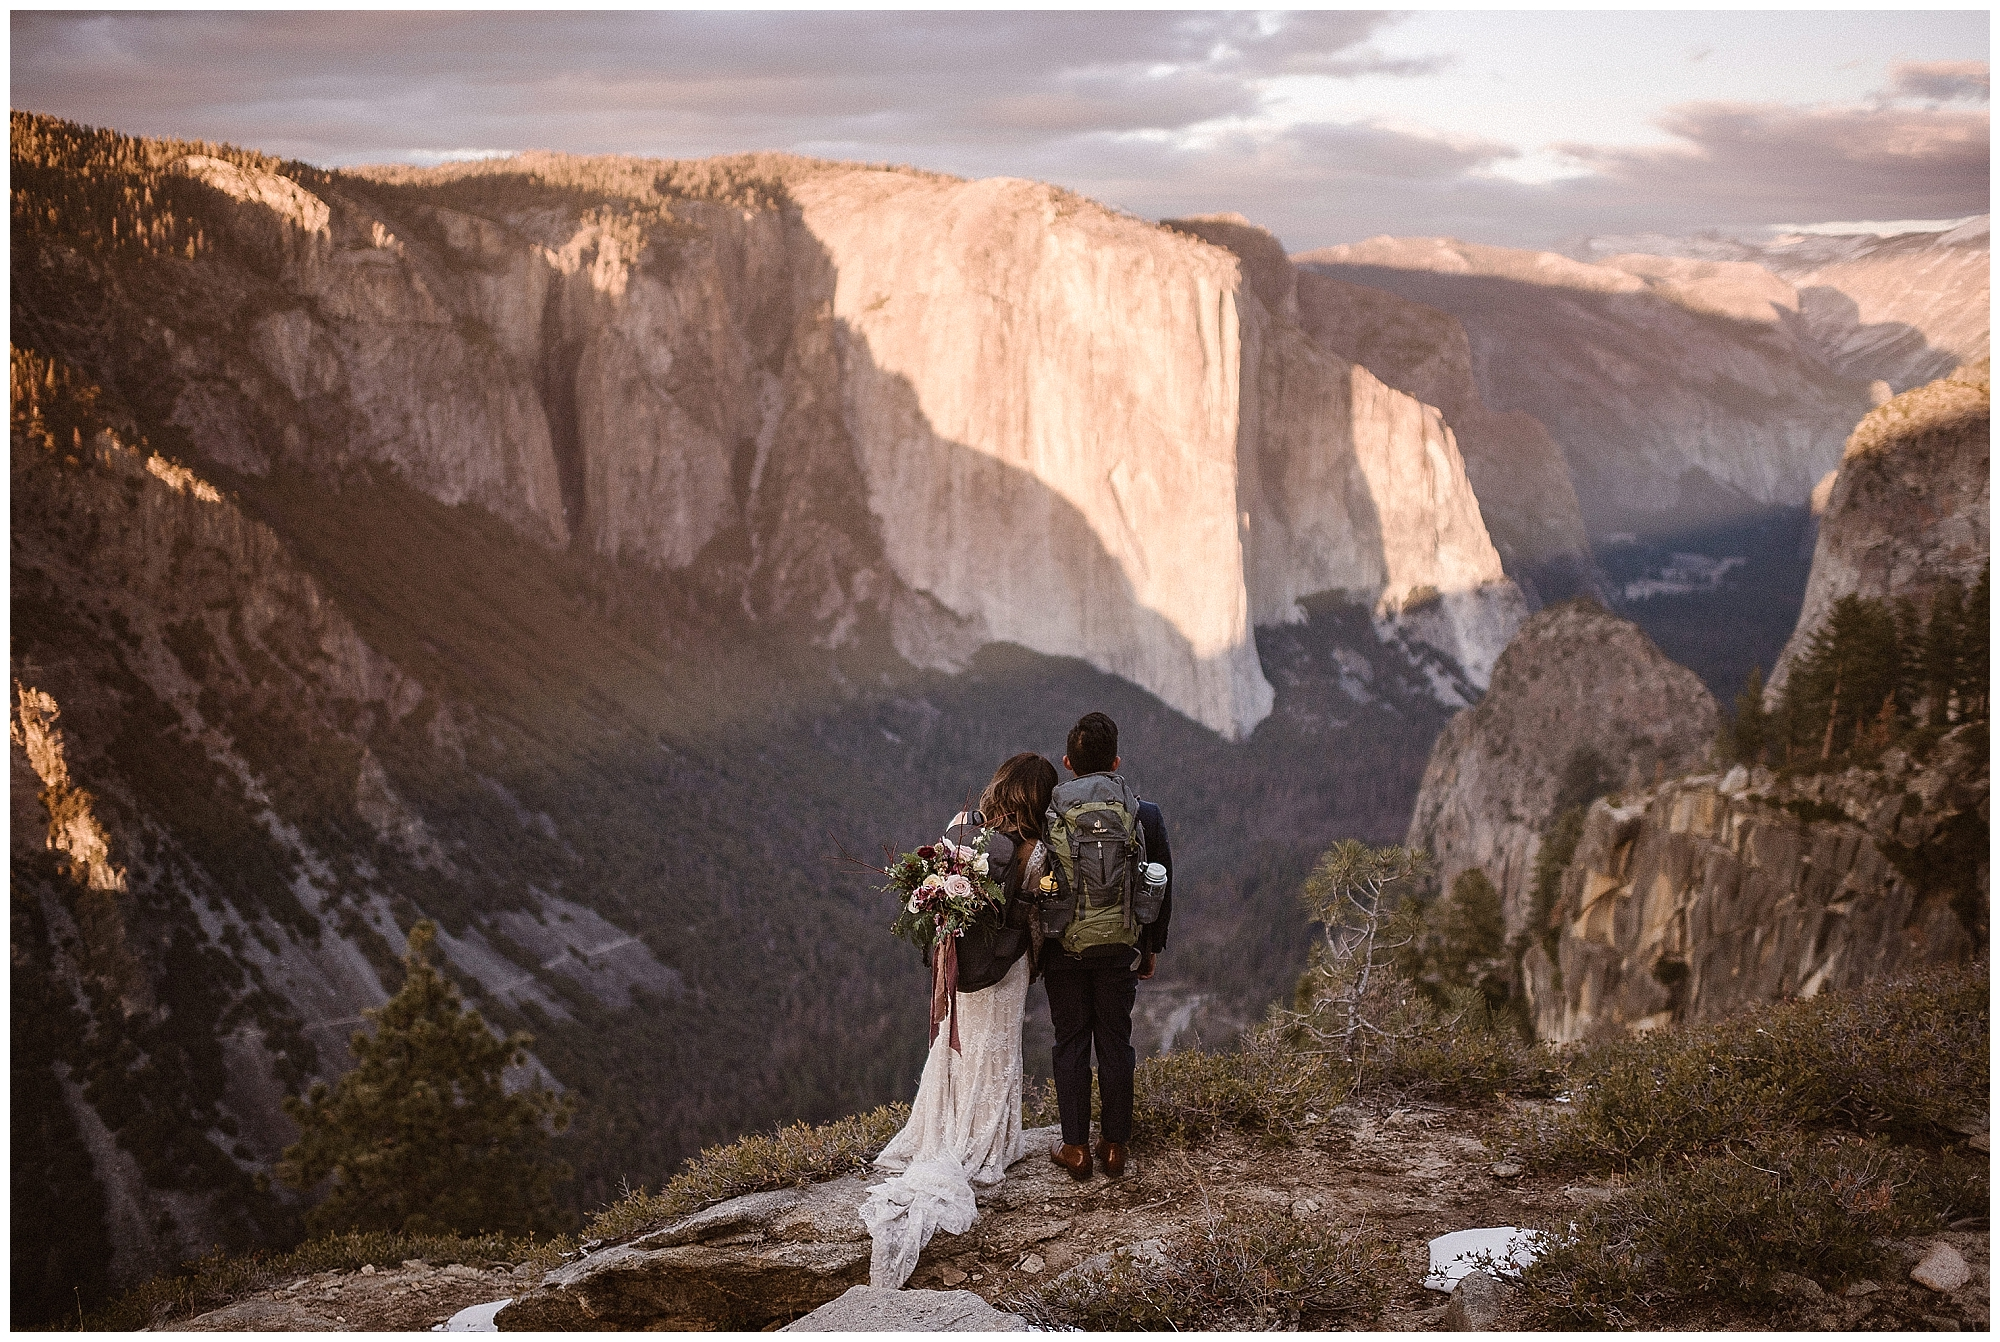 Hike in your wedding clothes and have an adventure on your elopement day! This couple chose to look out over Yosemite Valley in Yosemite National Park for their adventure elopement day. Photo by Maddie Mae, Adventure Instead Elopement Photographers.